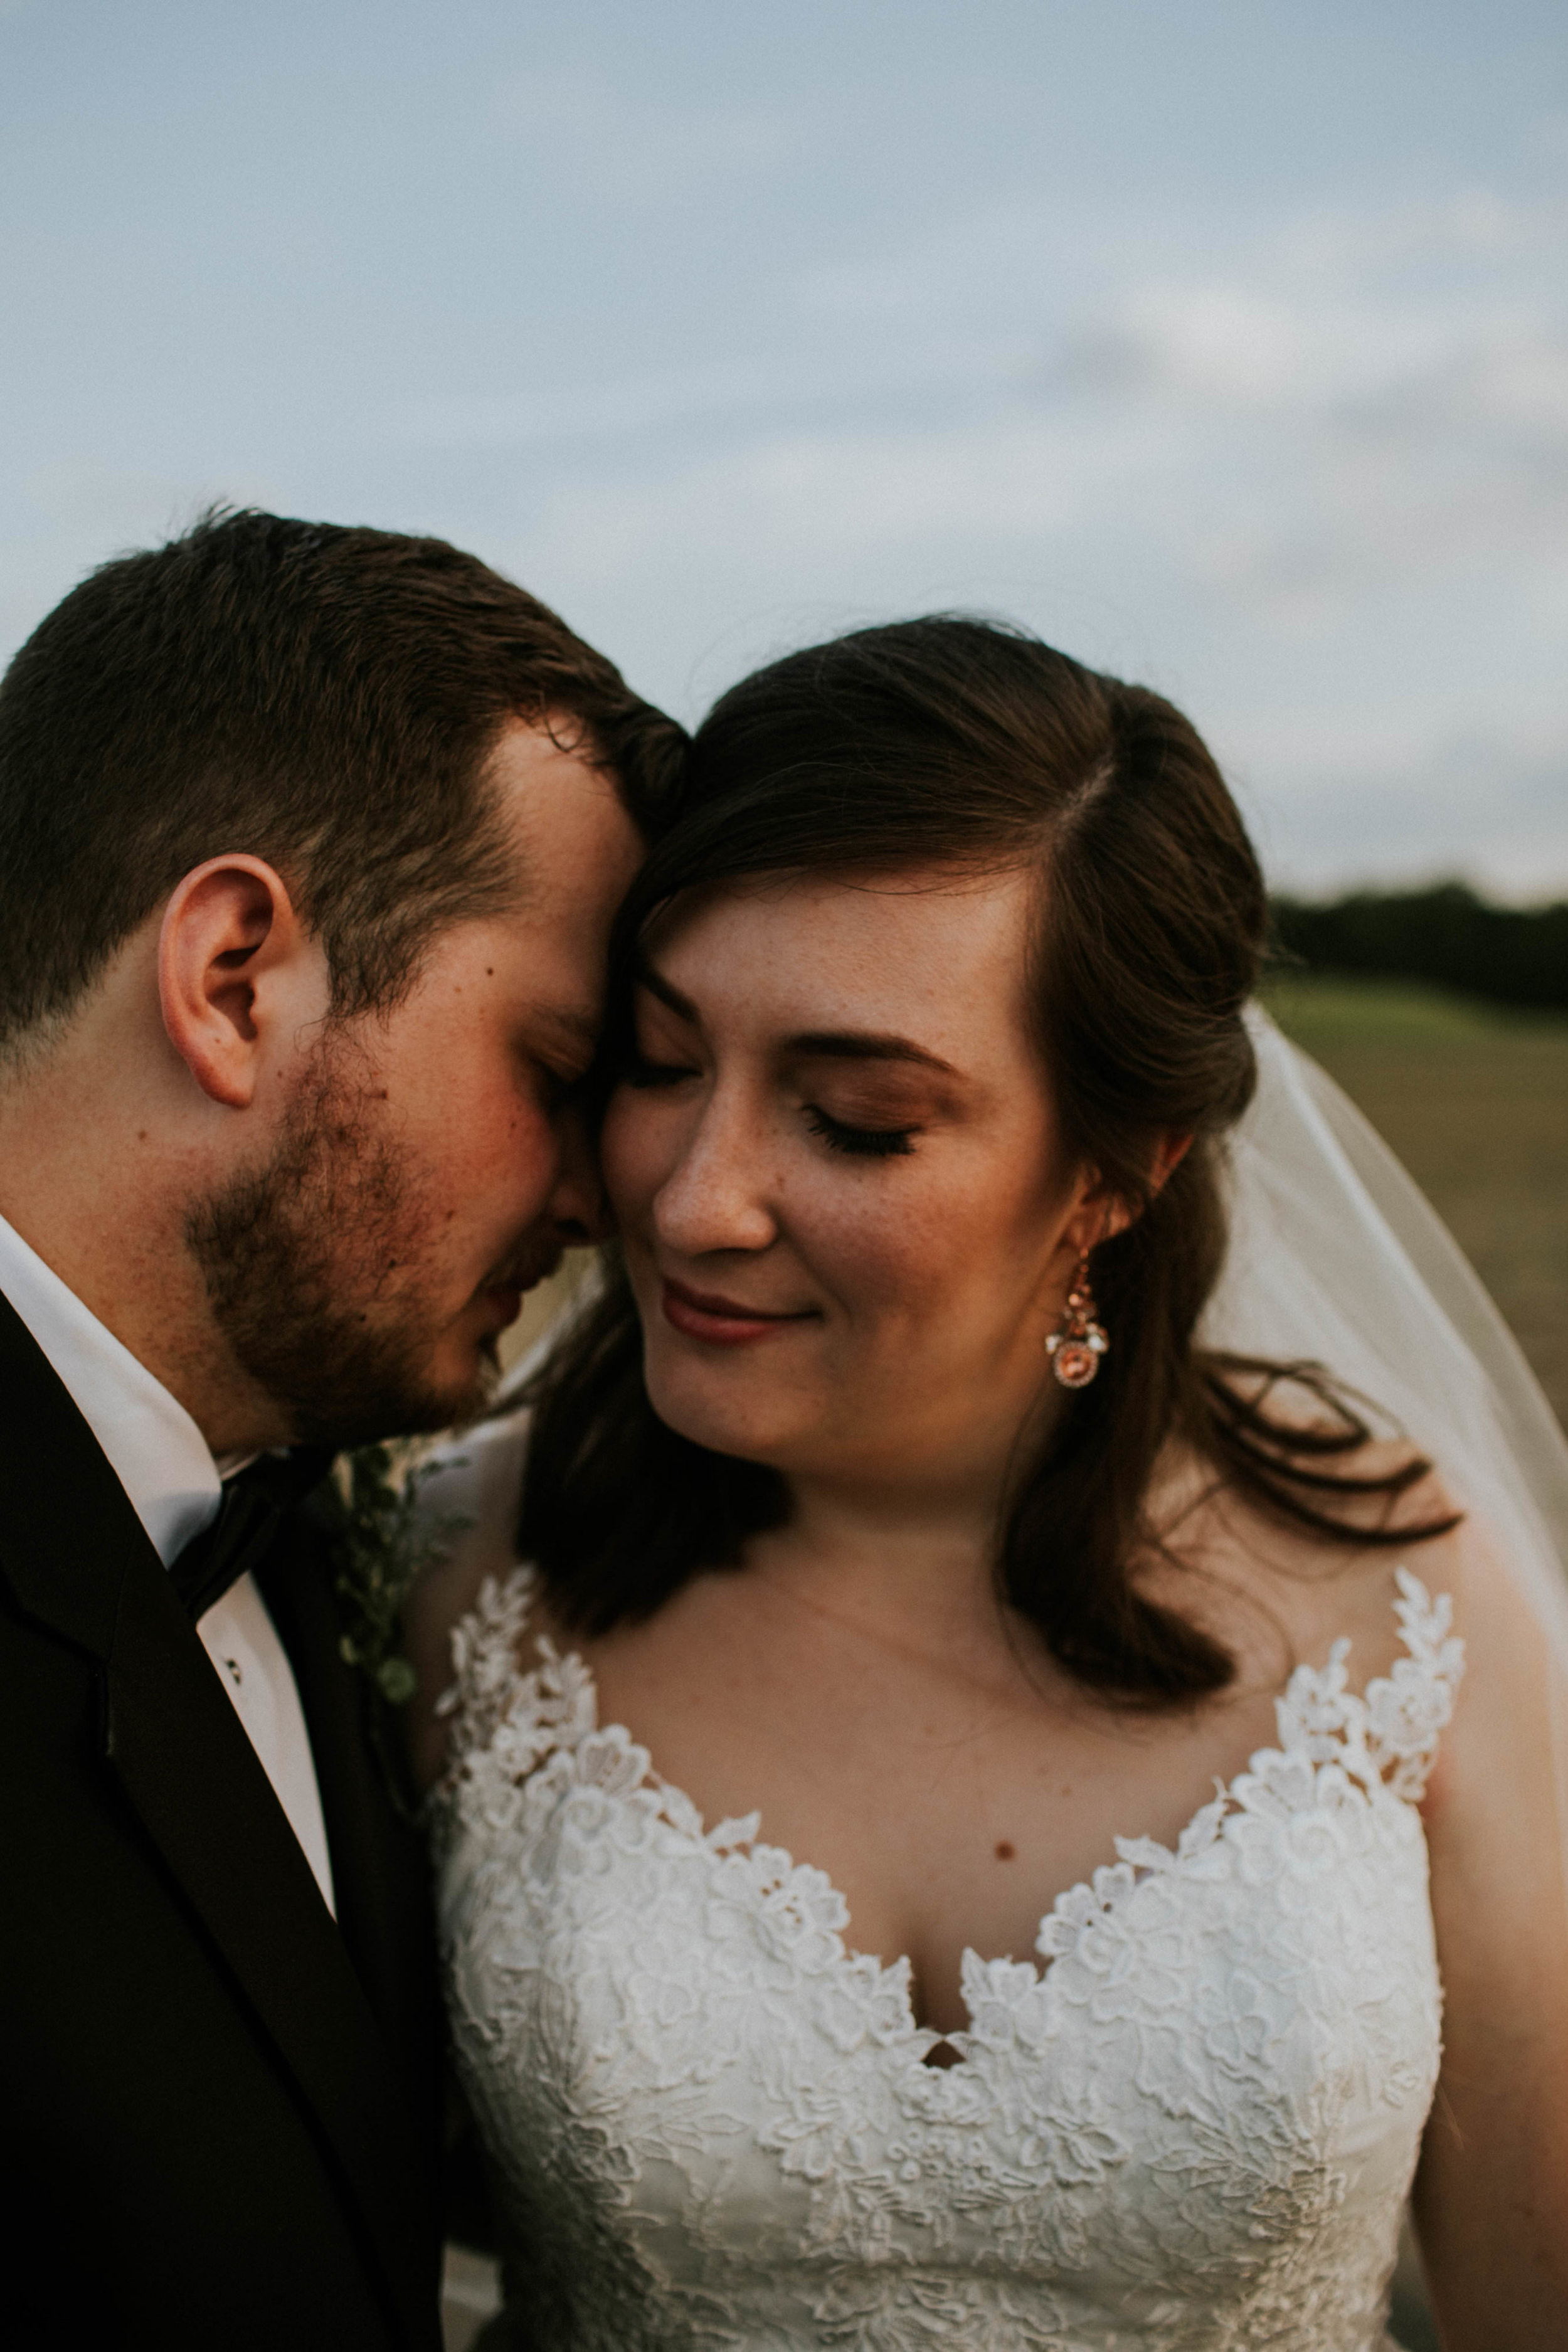 columbus ohio wedding photographer grace e jones photography85.jpg